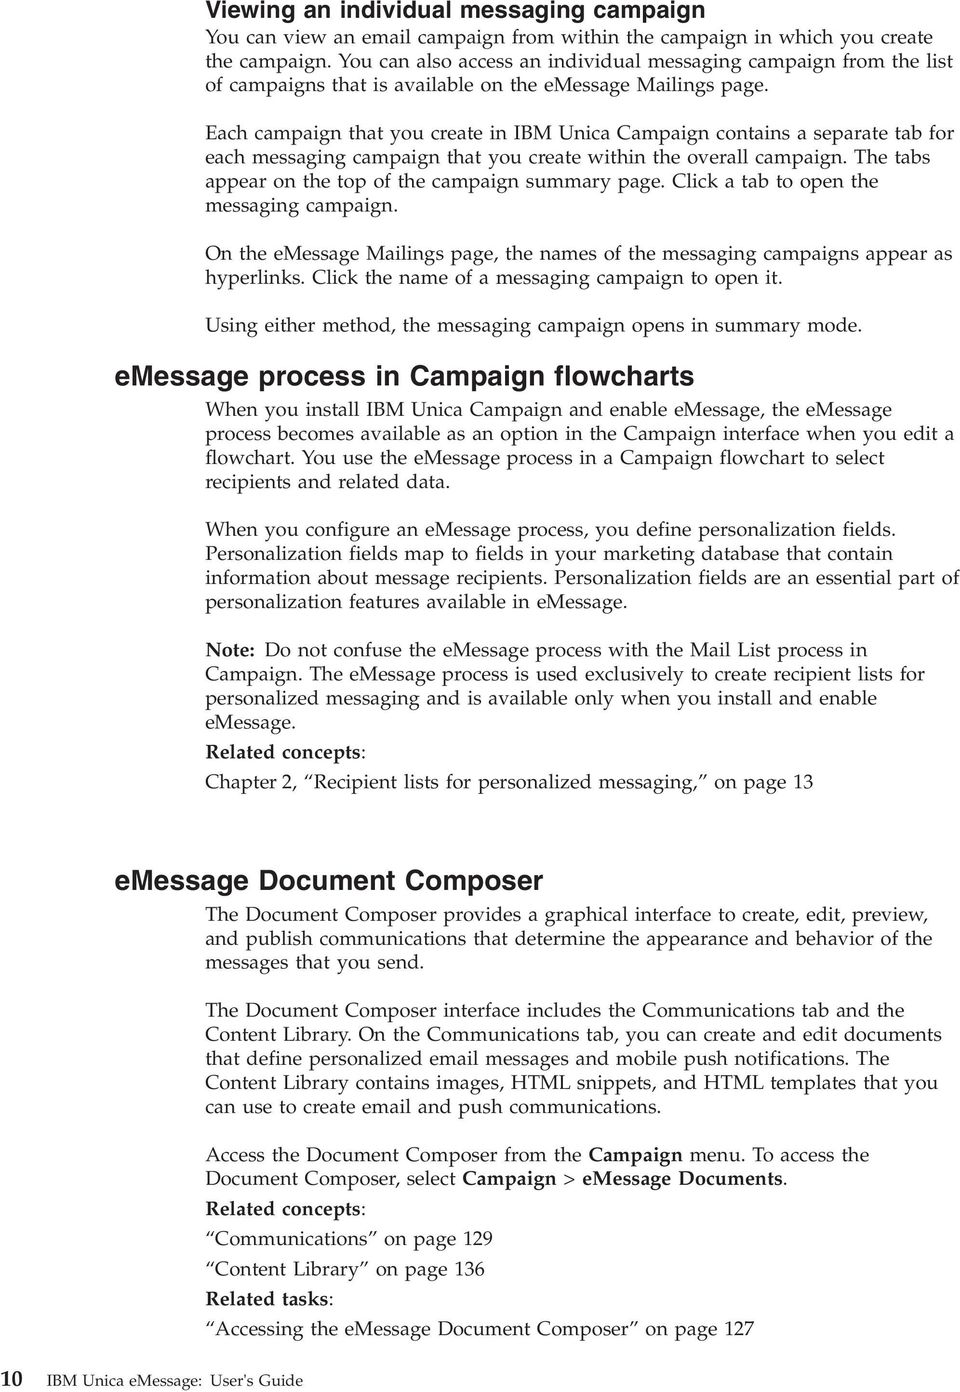 Each campaign that you create in IBM Unica Campaign contains a separate tab for each messaging campaign that you create within the overall campaign.